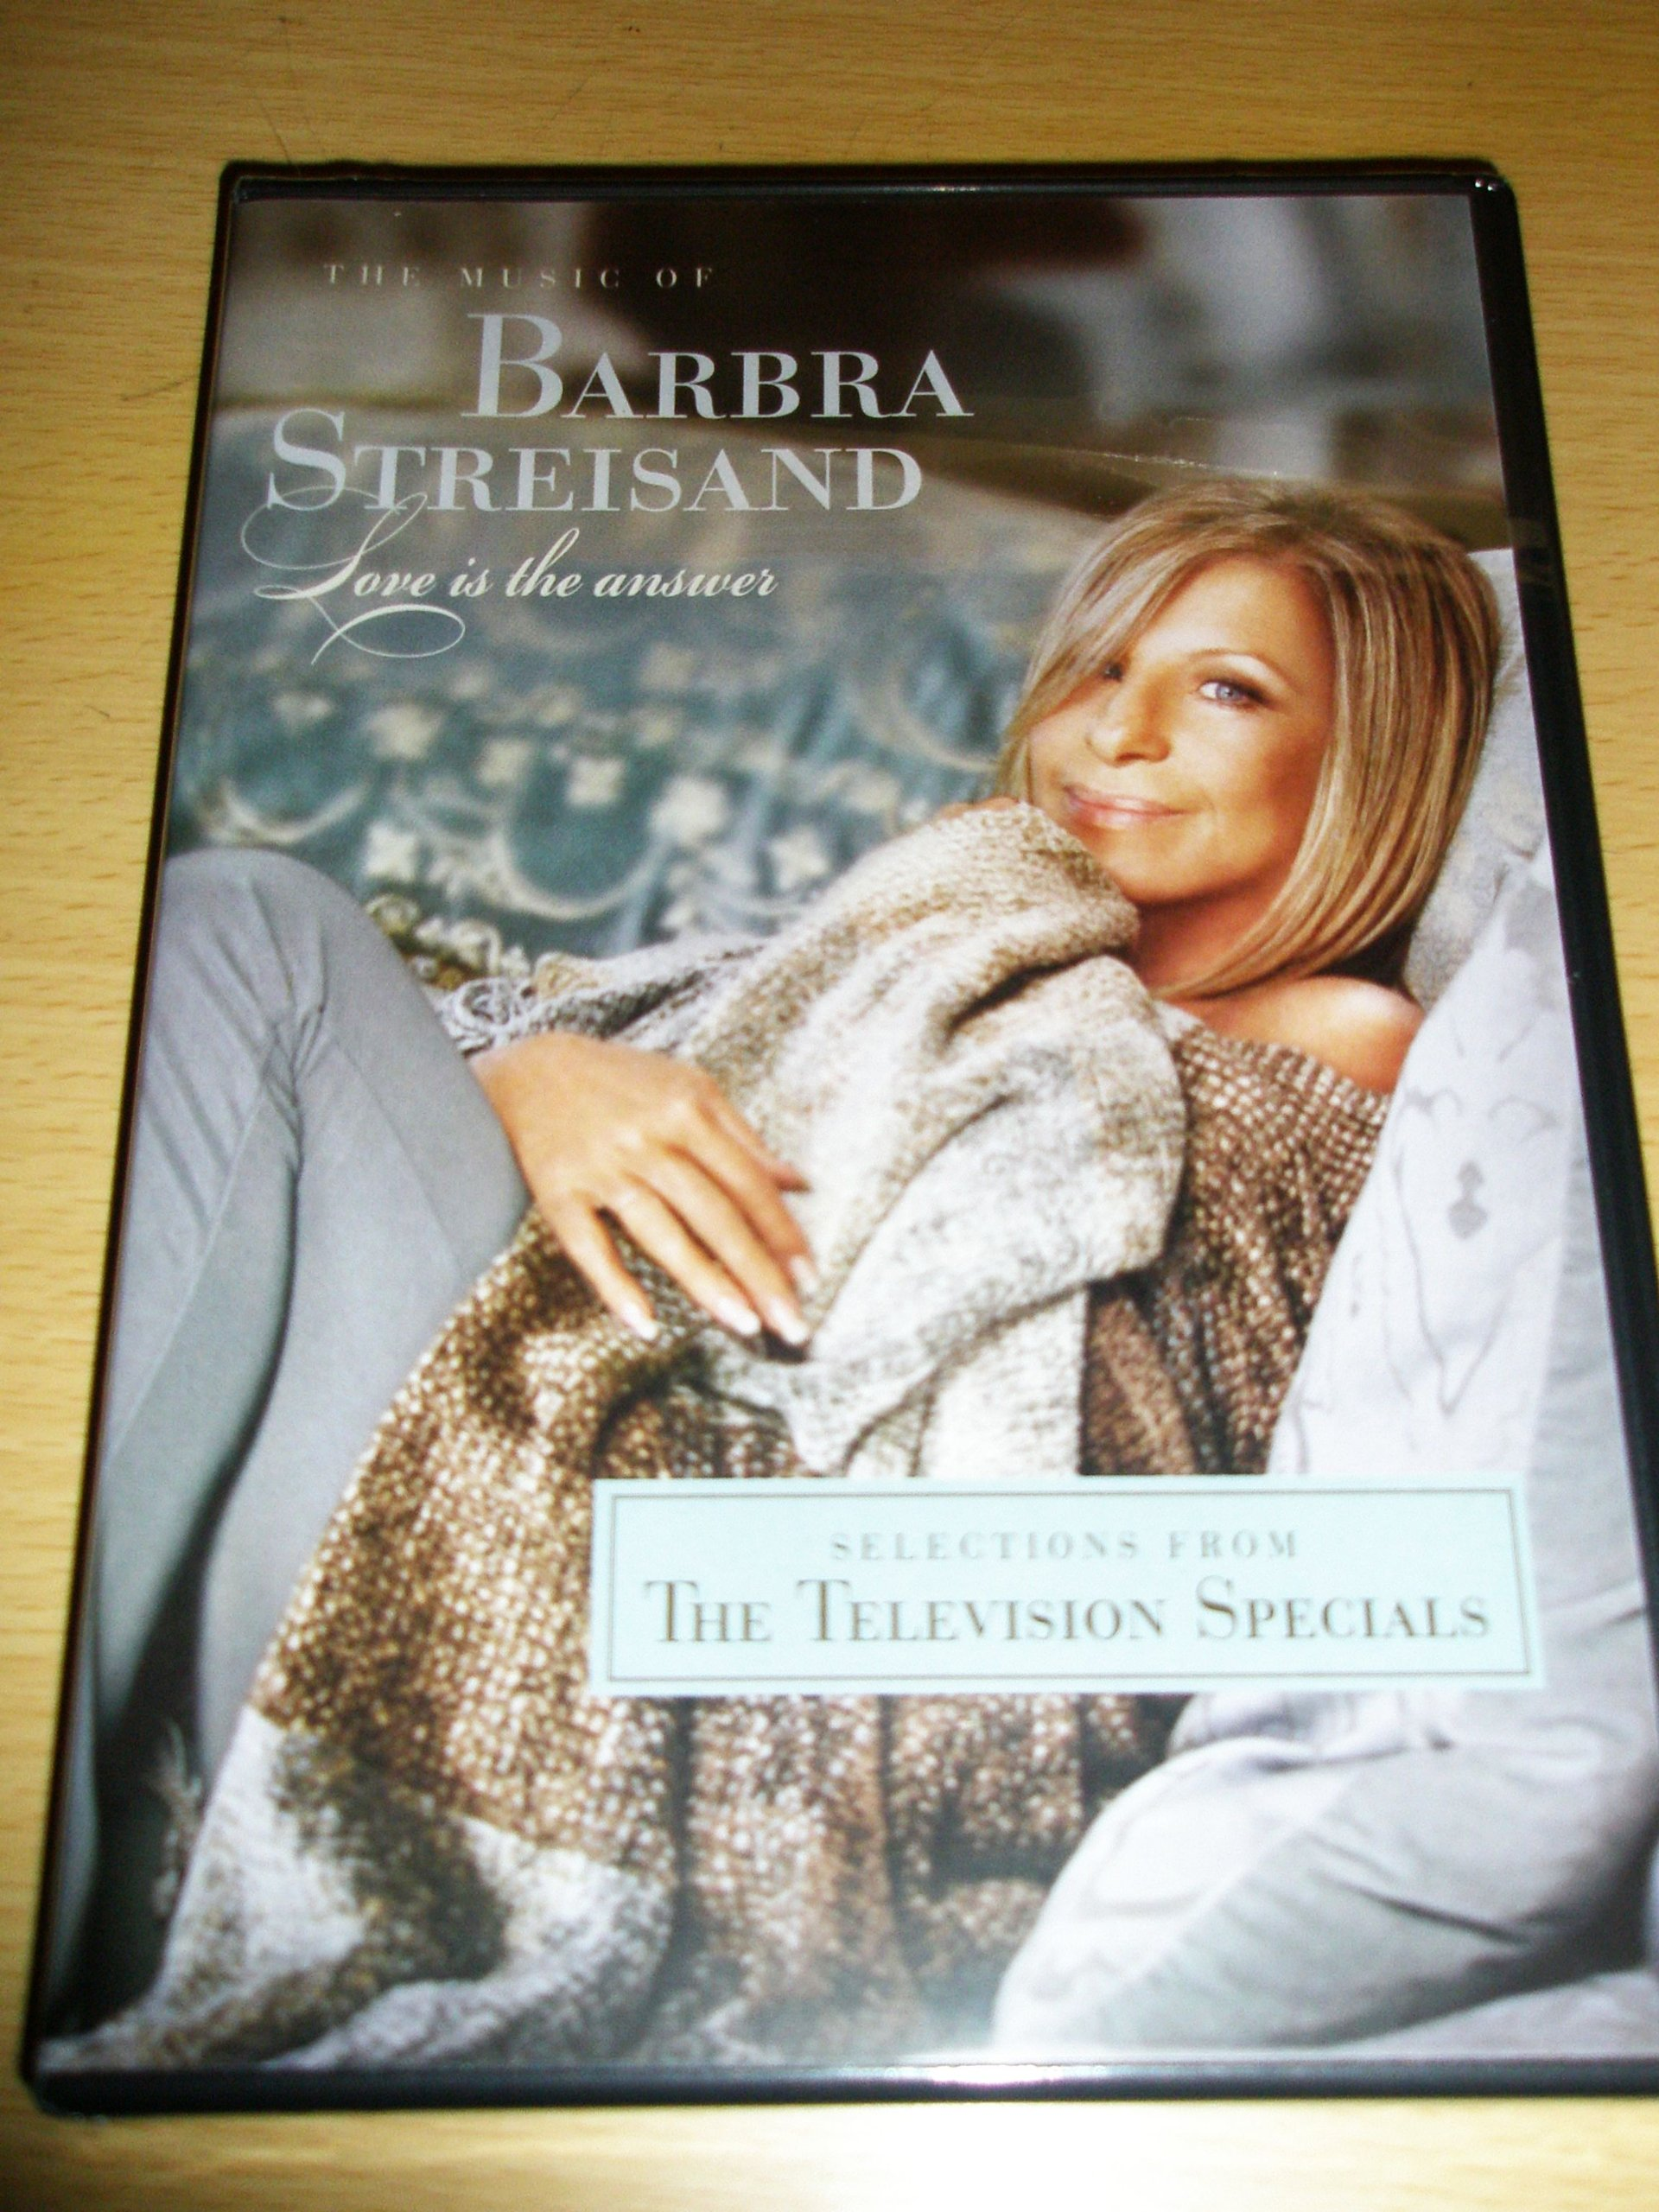 The Music of Barbra Streisand: Love Is the Answer - Selections From the Television Specials